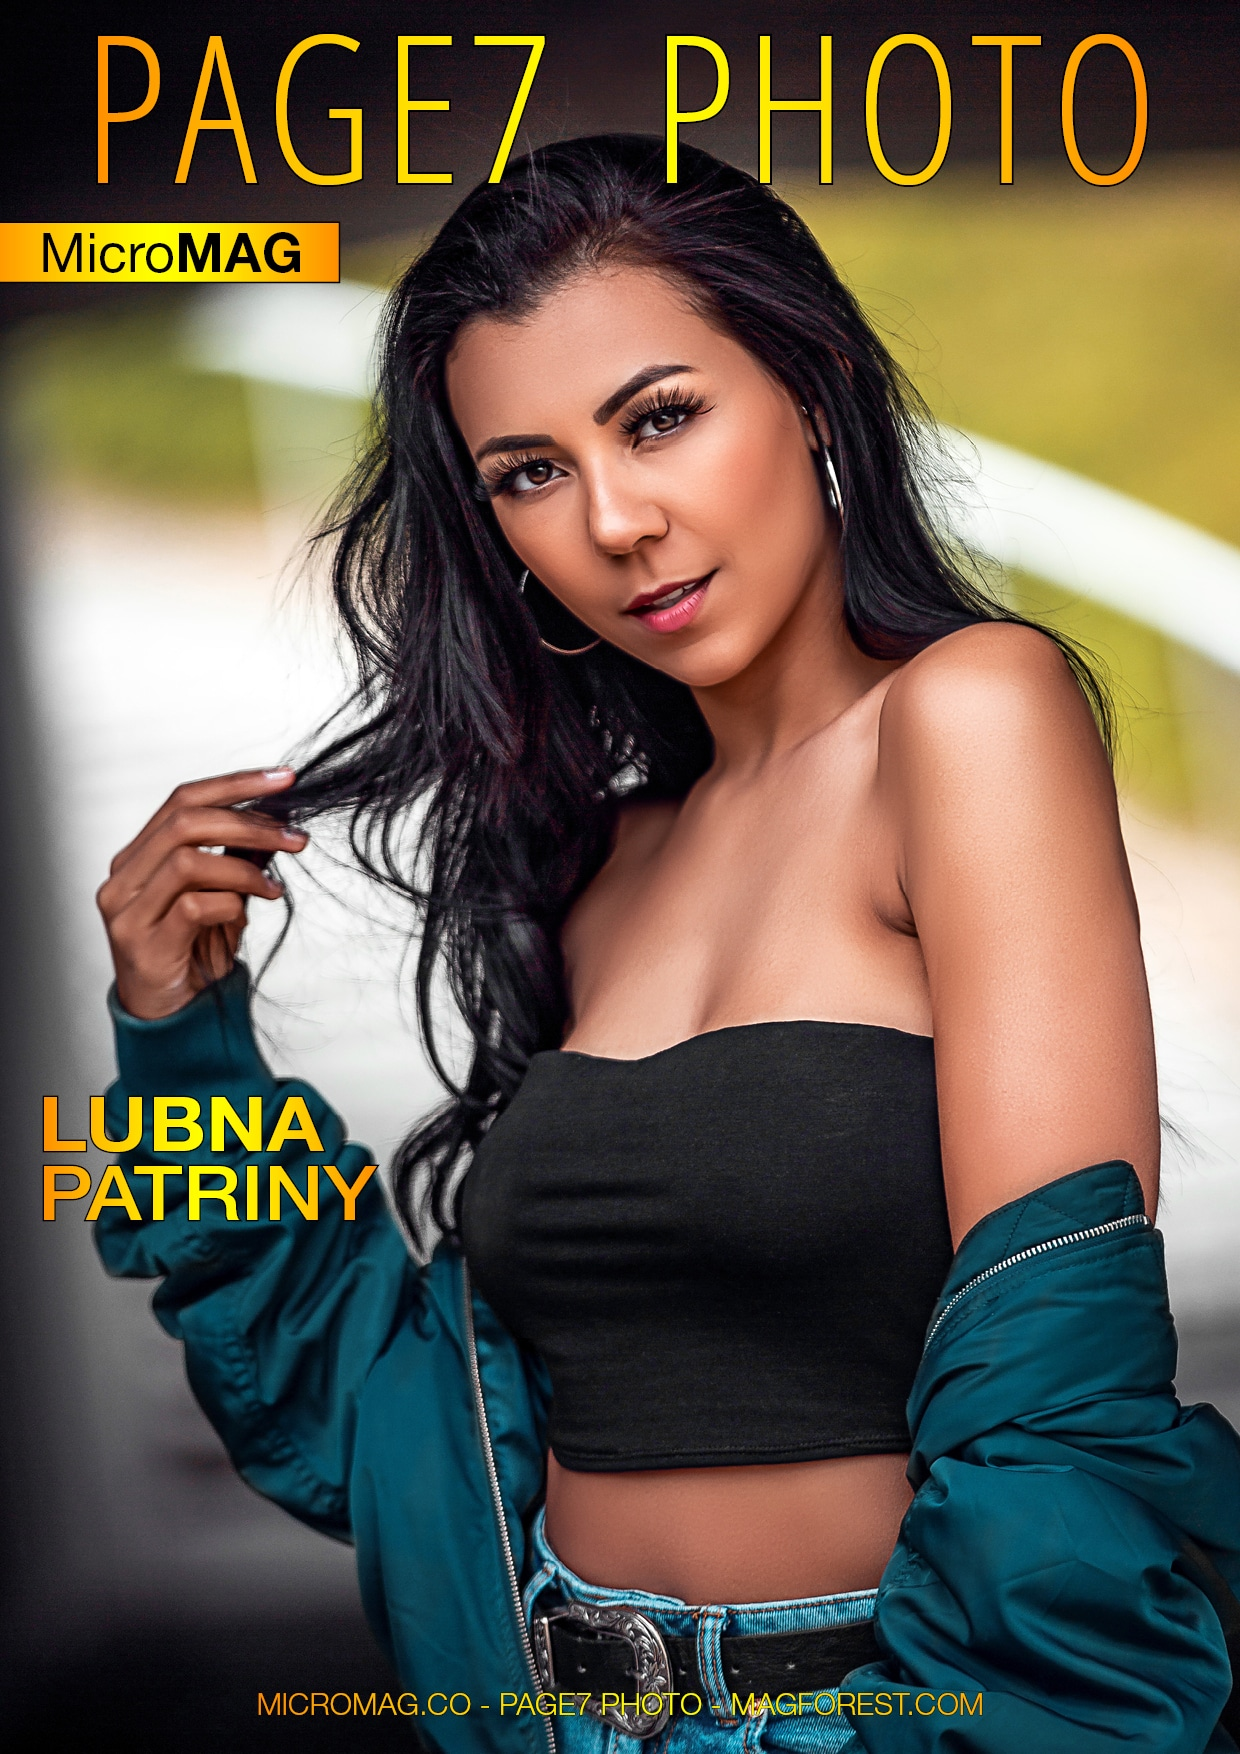 PAGE7 Photo MicroMAG - Lubna Patriny - Issue 4 2